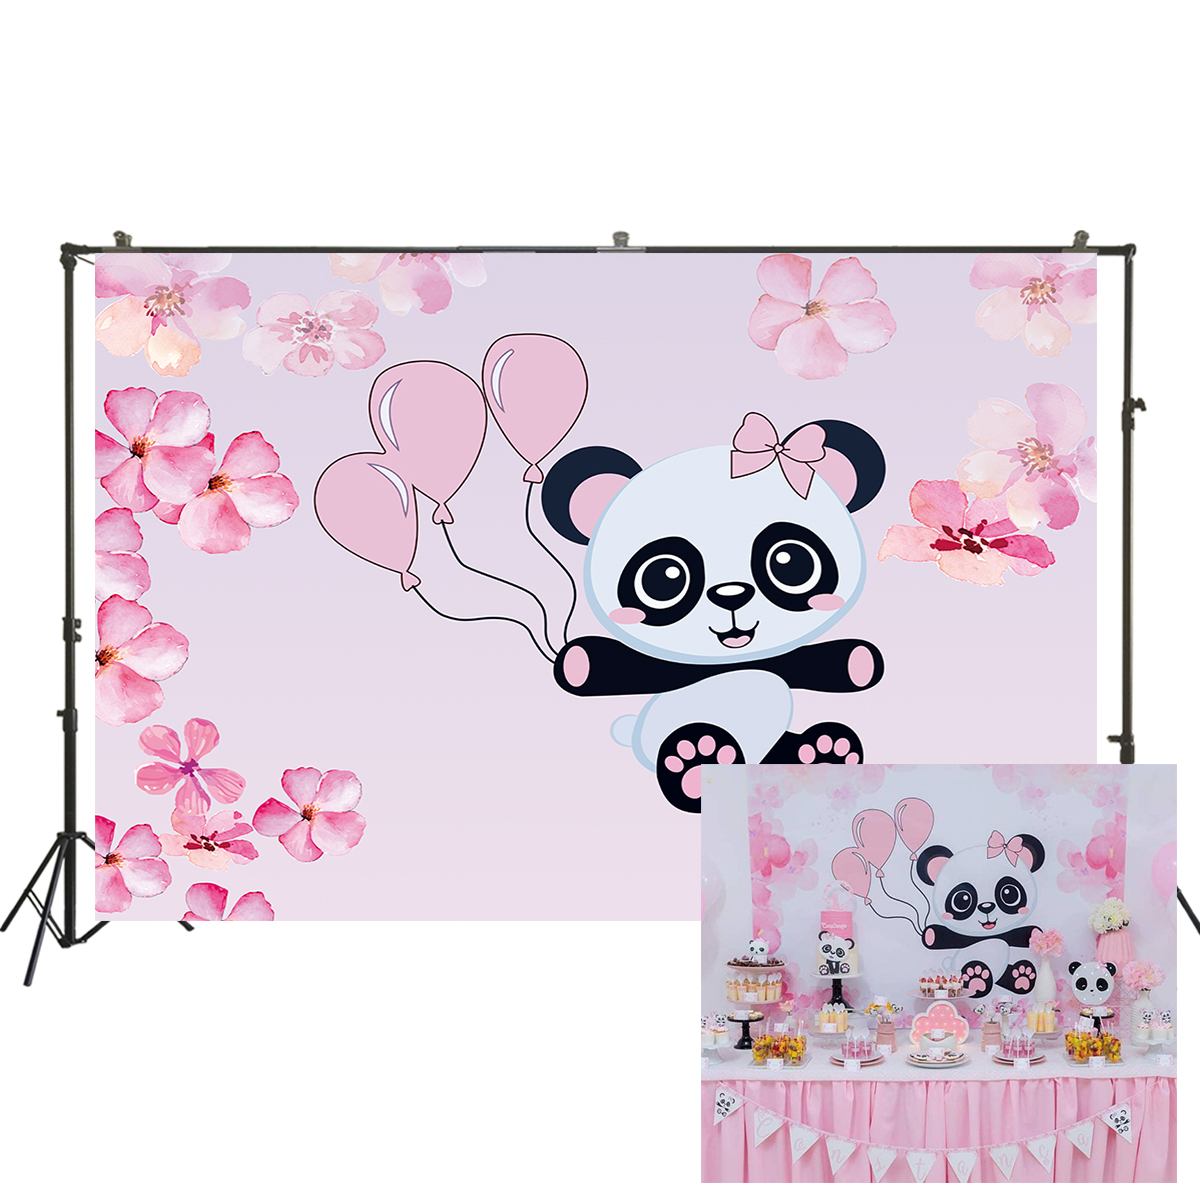 Cartoon Background Wall Panda Angel Theme Photography Backdrop Birthday Party Baby Shower Photo Background Banners Newborns Photo Booth Studio Props Portrait Photo Backdrop Video Shooting Background